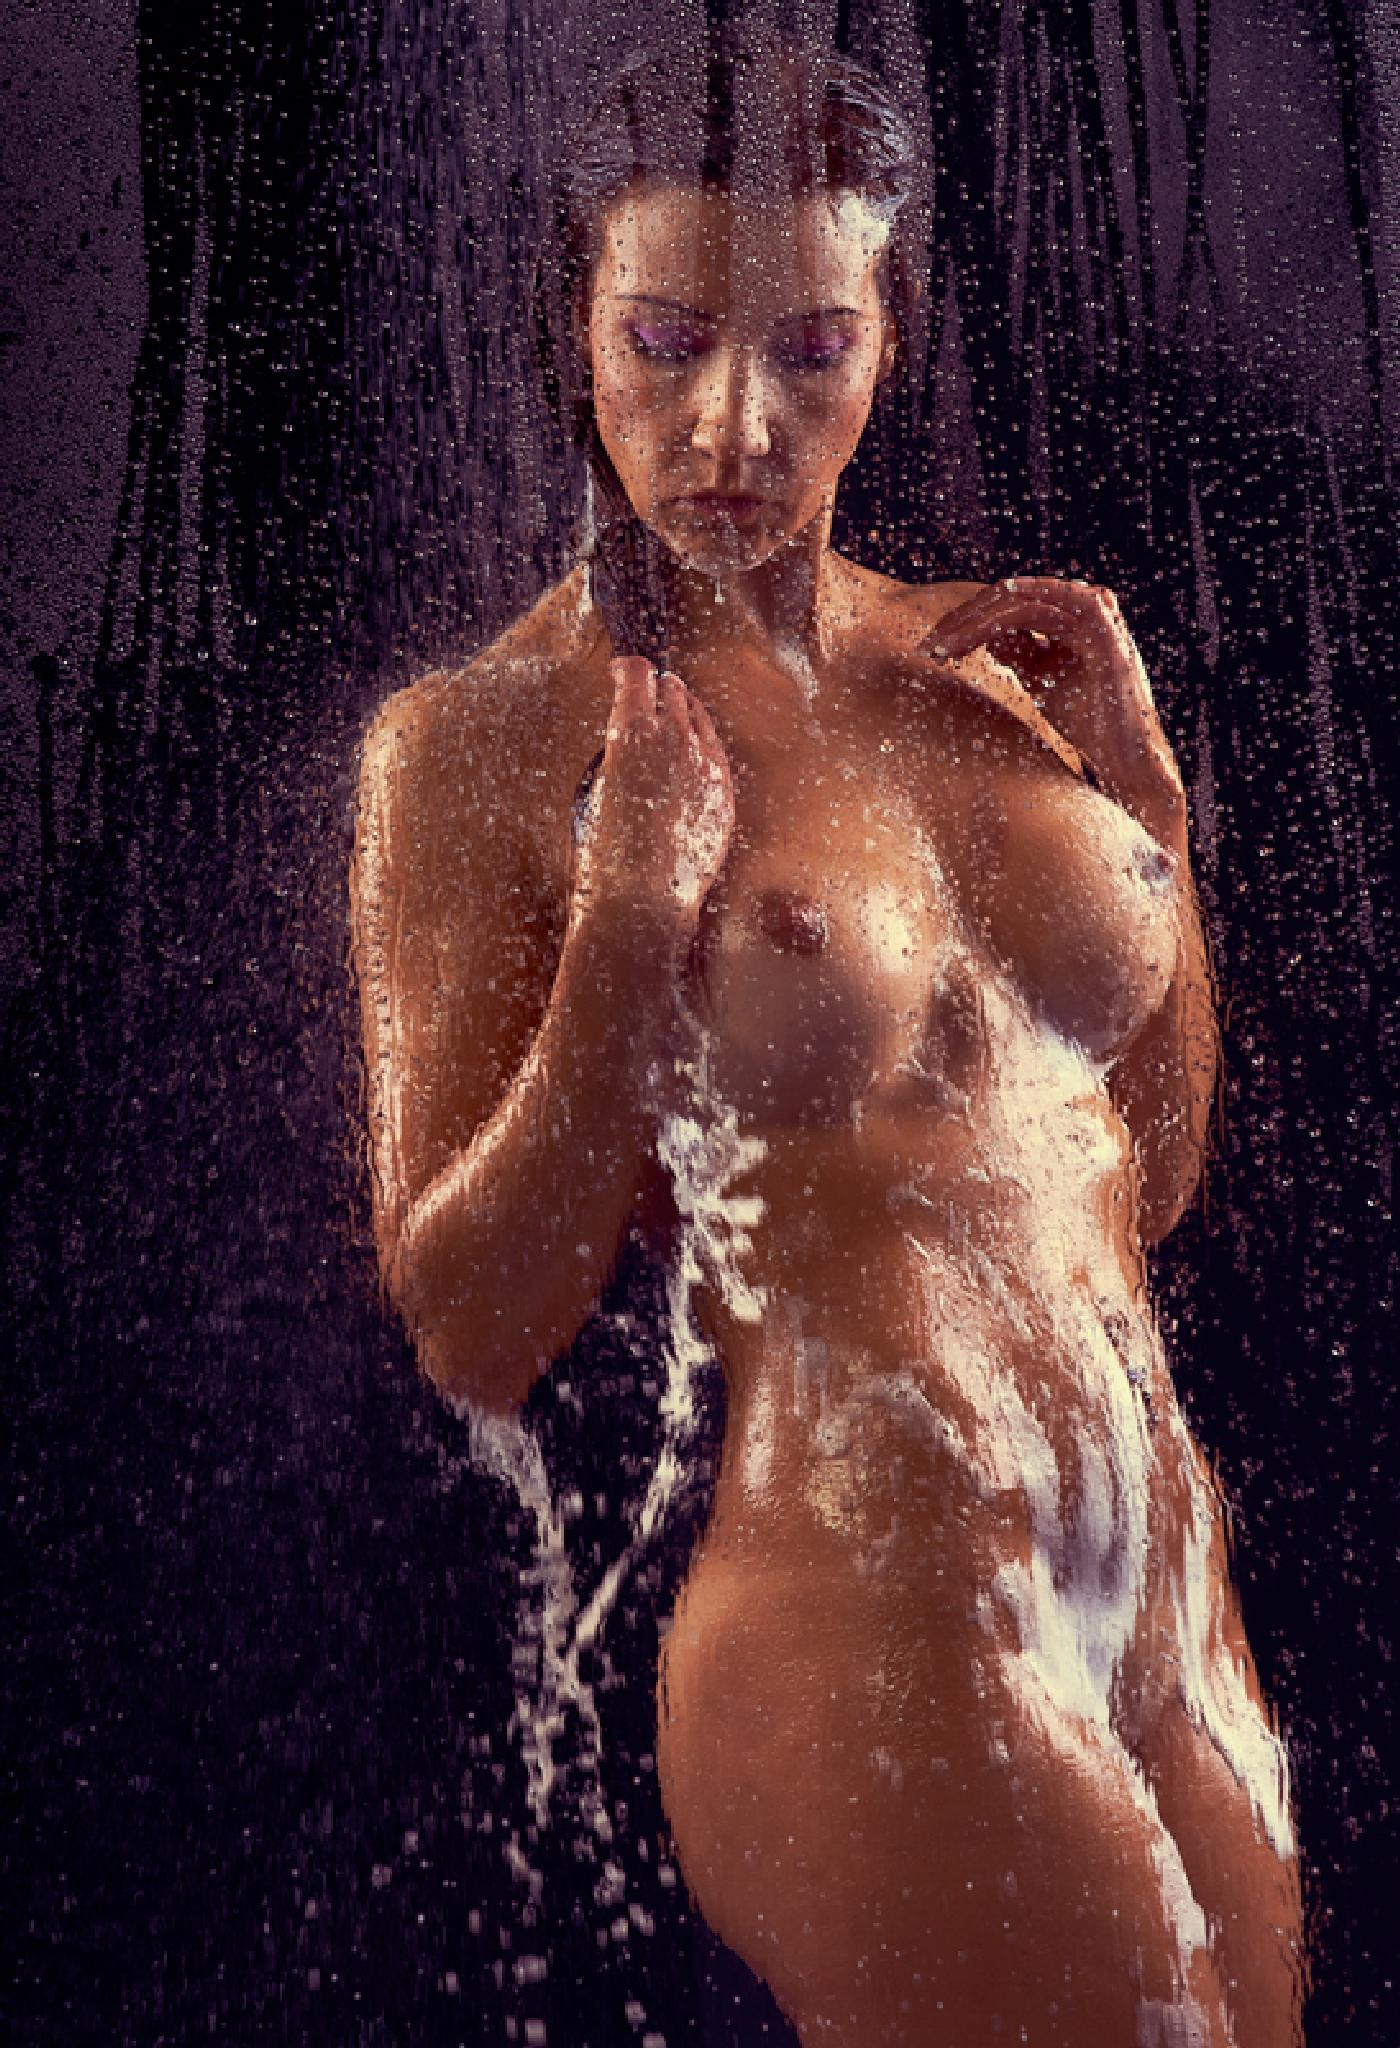 Shower by ken.backius